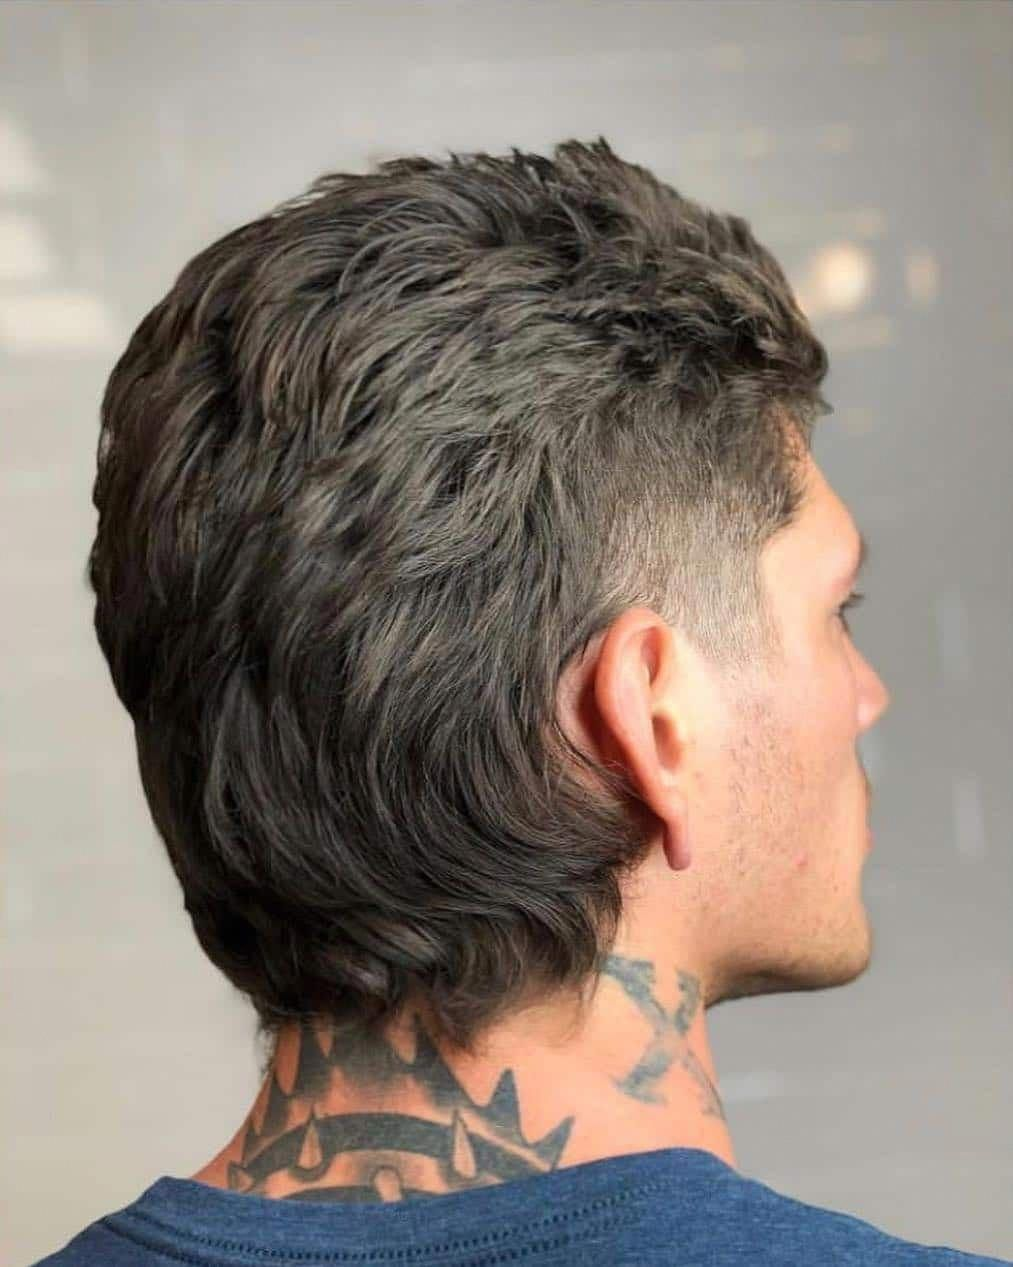 25 Mullet Haircuts That Are Awesome Super Cool Modern For 2020 Mullet Haircut Mohawk Hairstyles Men Mullet Hairstyle